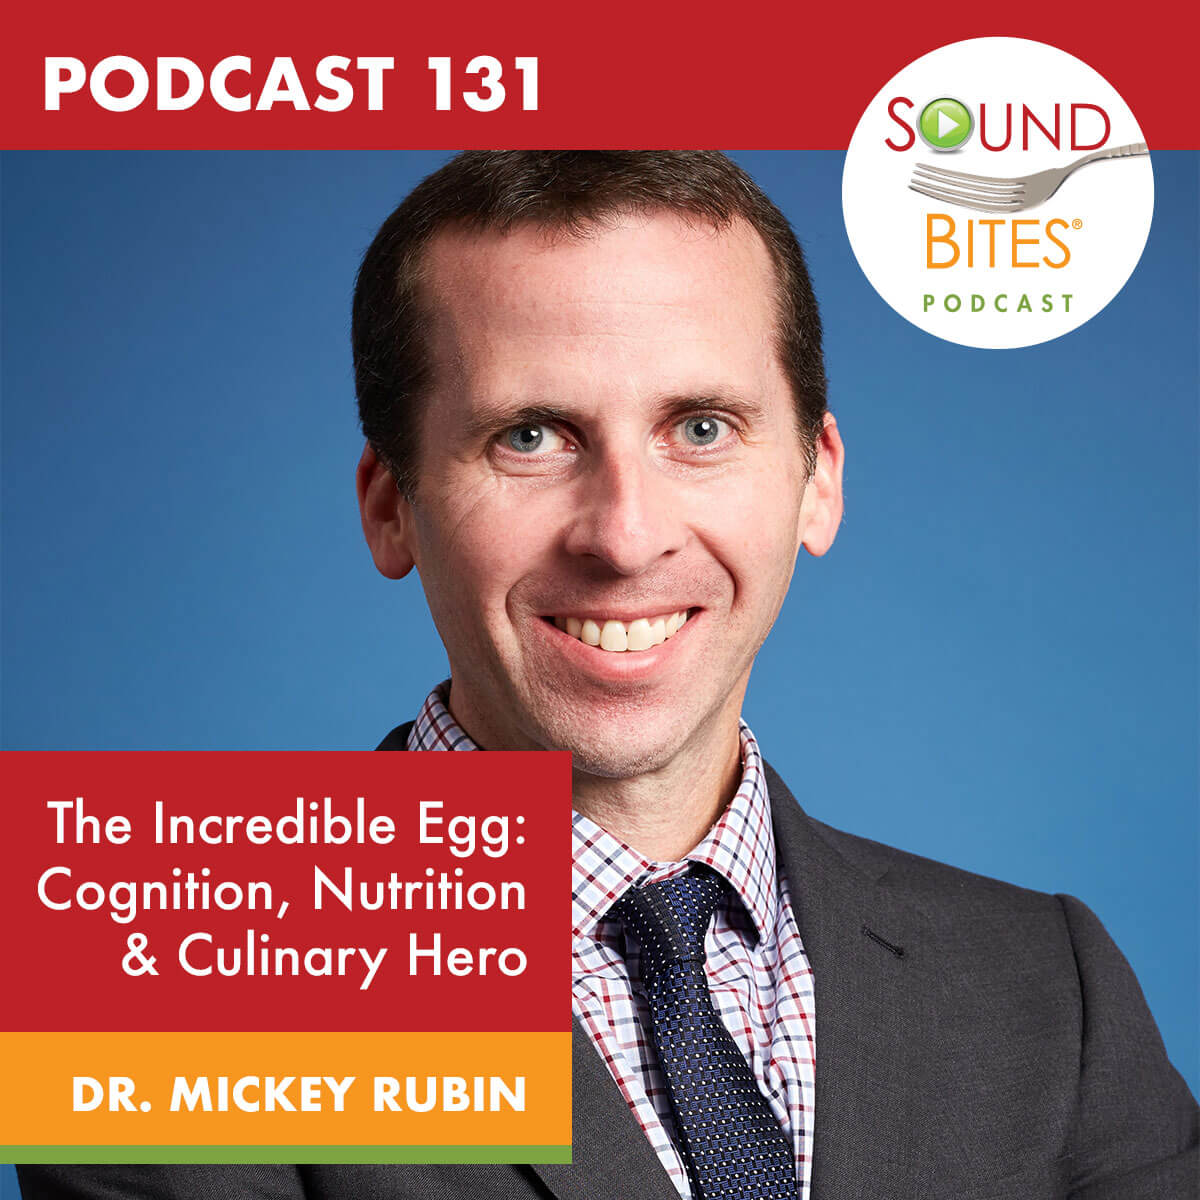 The Incredible Egg: Cognition, Nutrition & Culinary Hero – Dr. Mickey Rubin